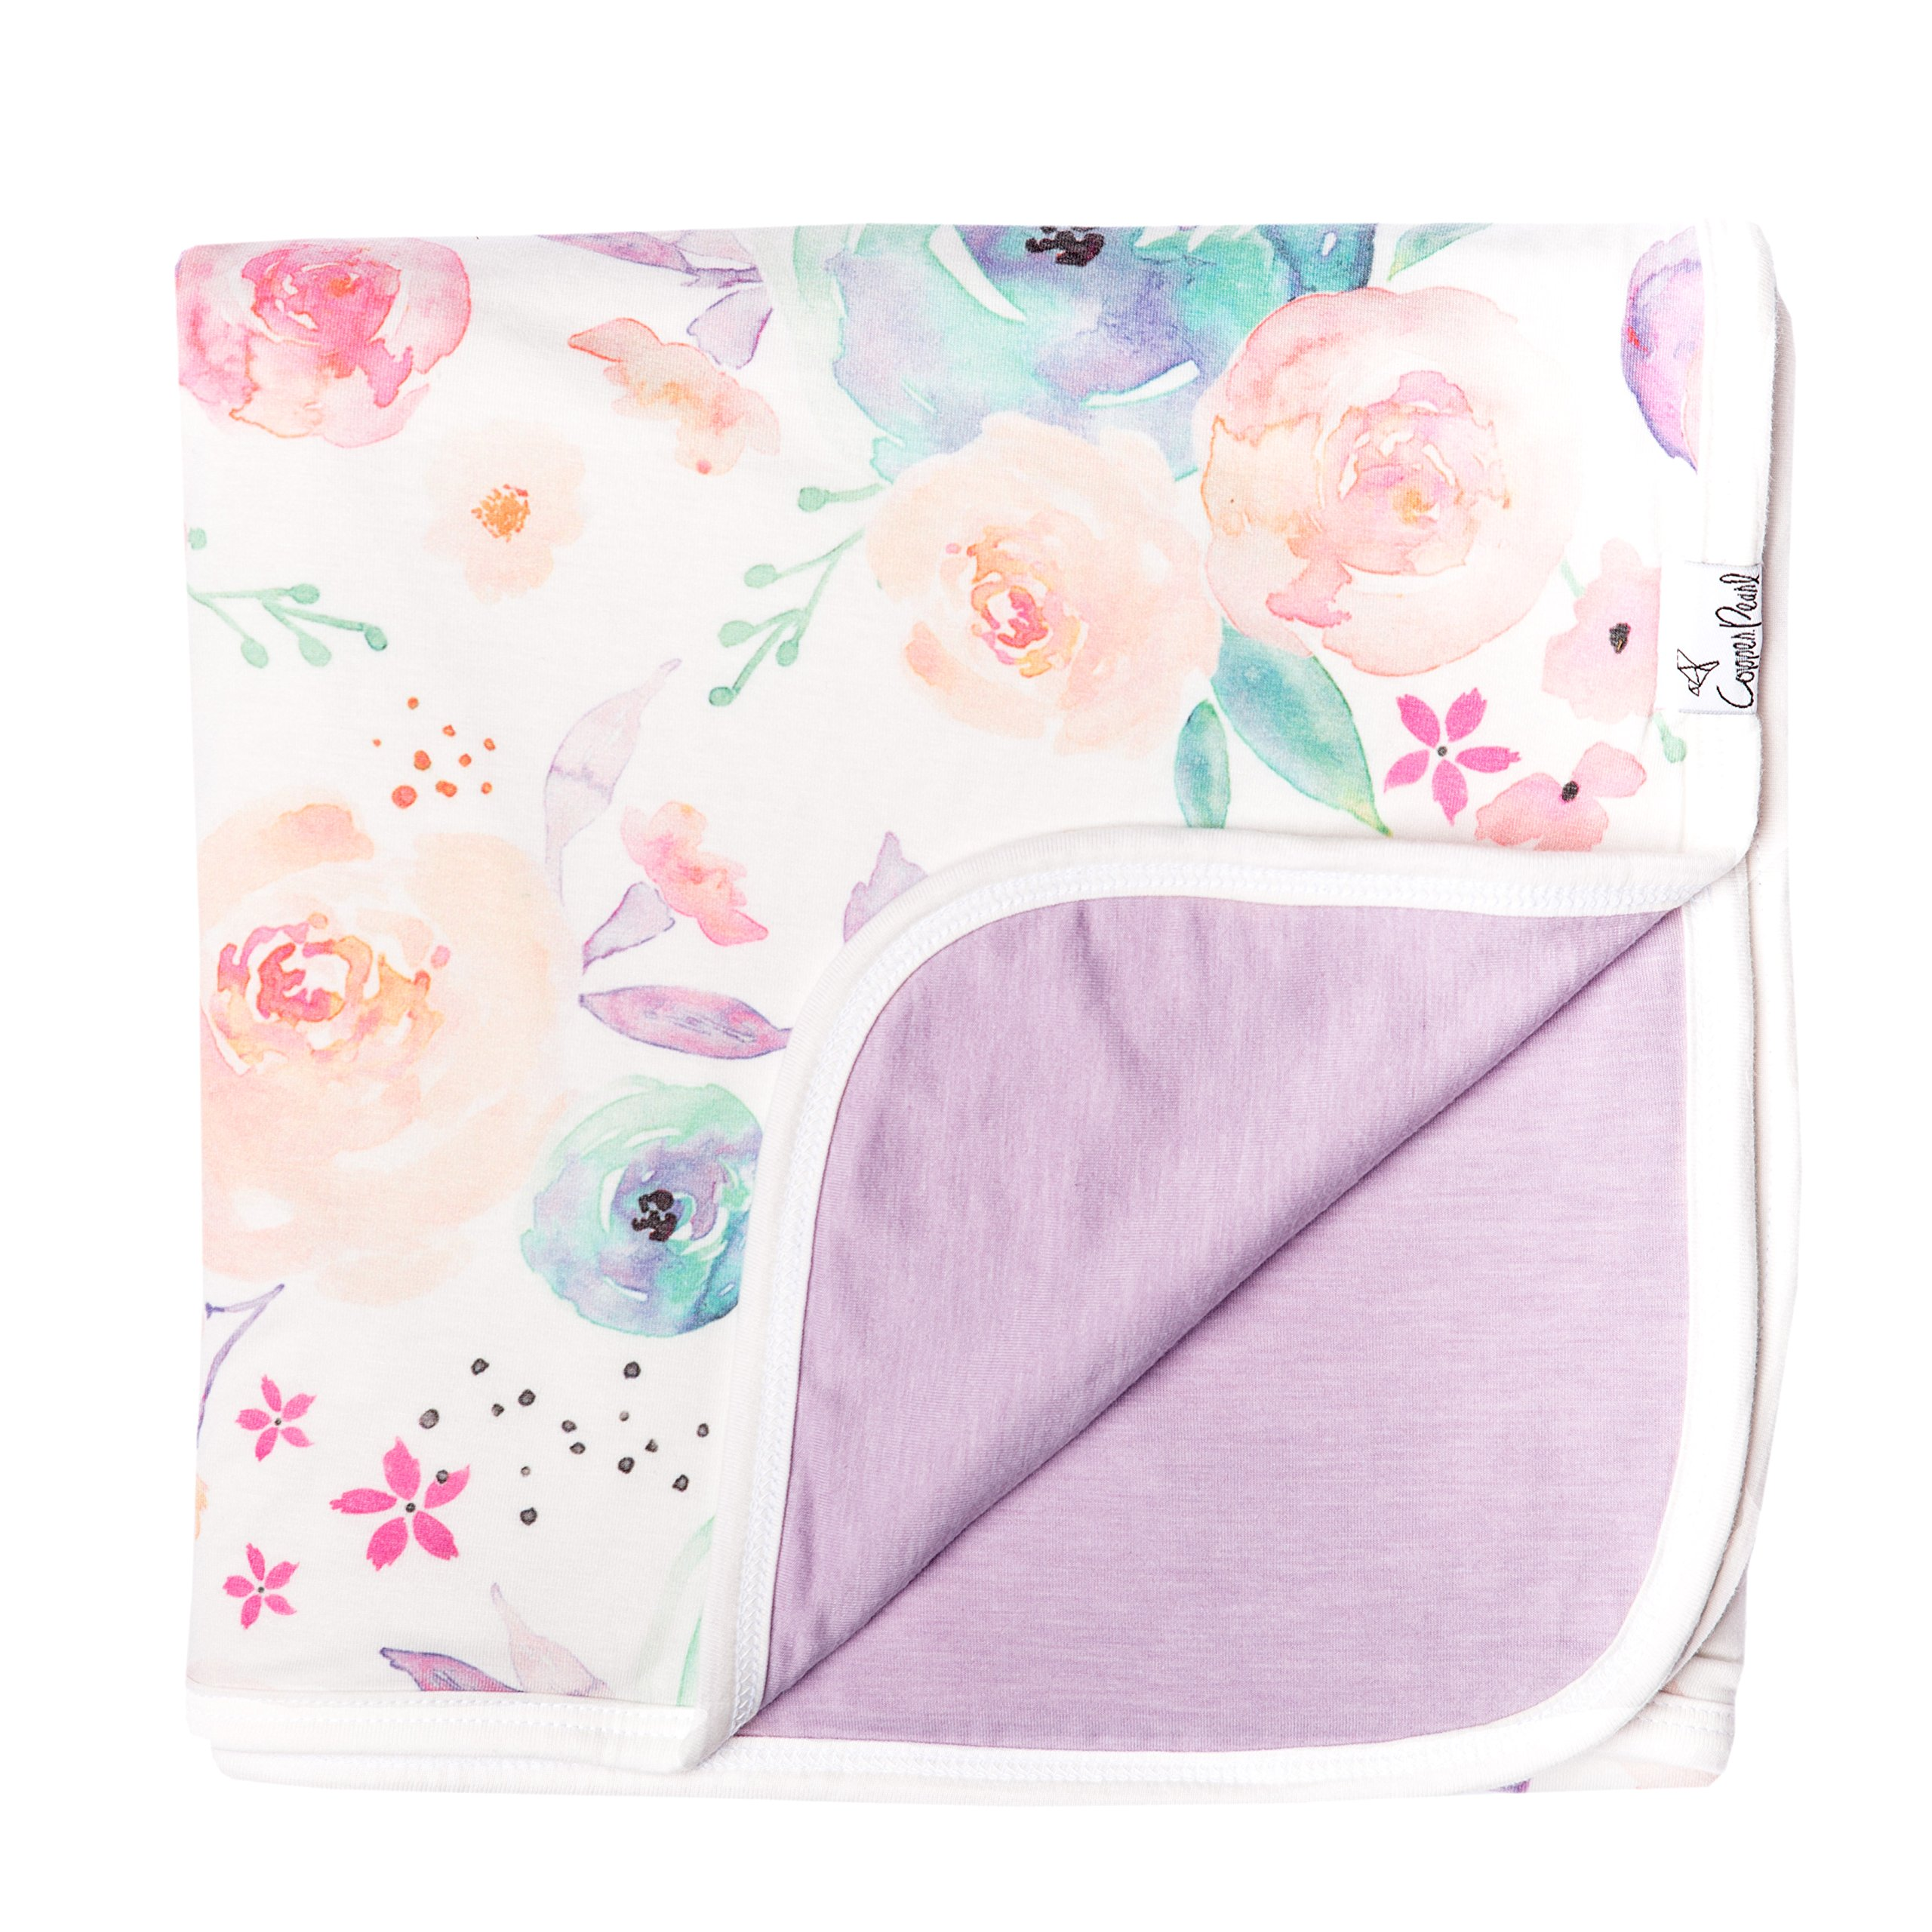 Large Premium Knit Baby 3 Layer Stretchy Quilt Blanket Floral''Bloom'' by Copper Pearl